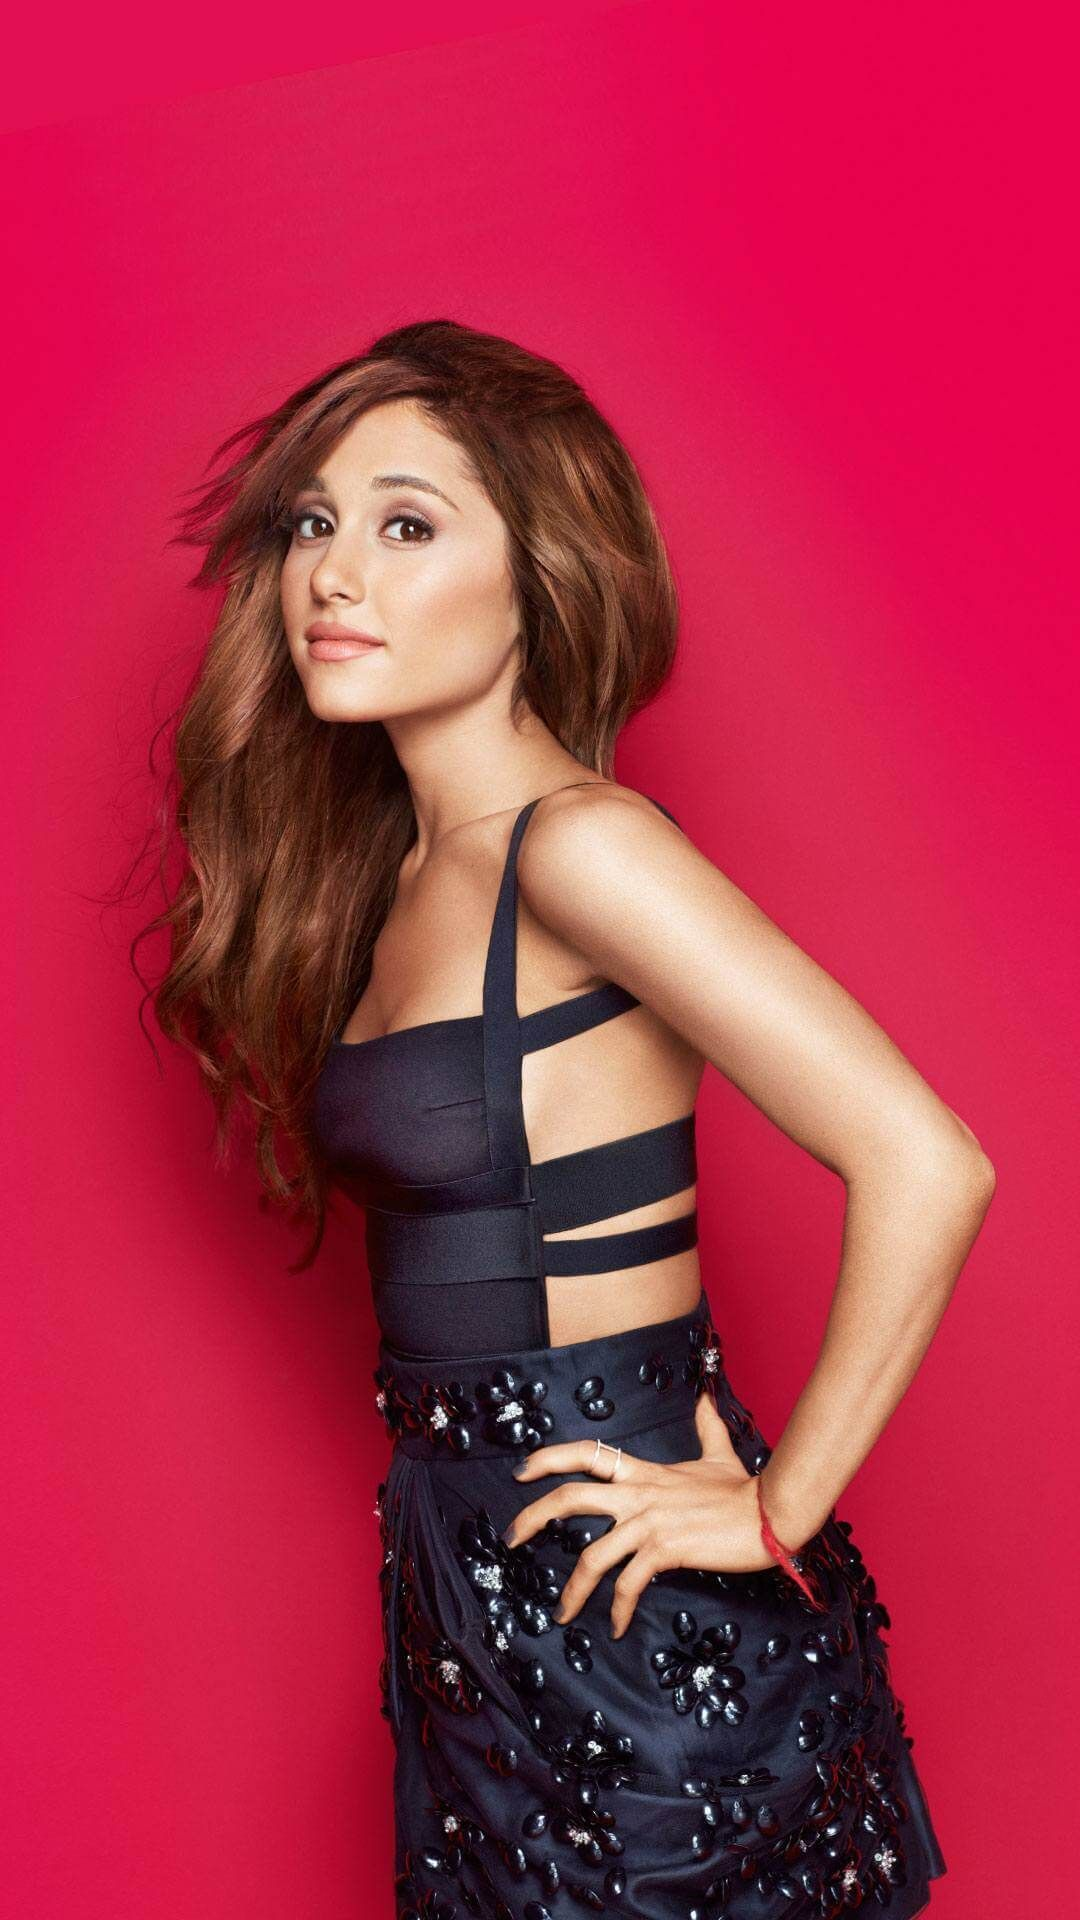 Ariana Grande Wallpaper iPhone 6 Plus HD Actress and